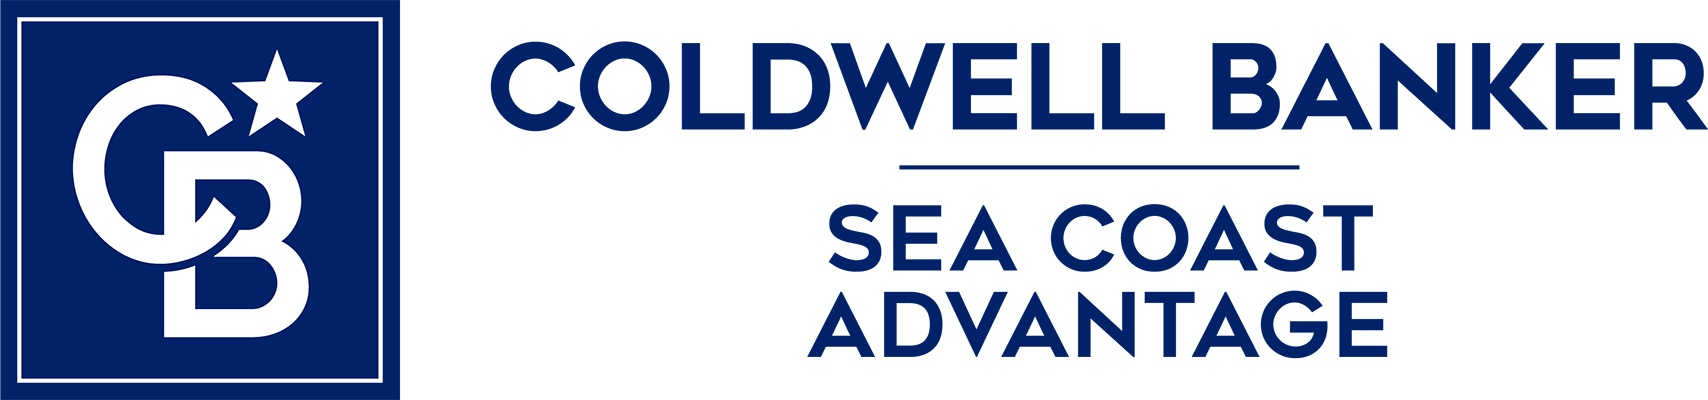 Renee Saffo - Coldwell Banker Sea Coast Advantage Realty